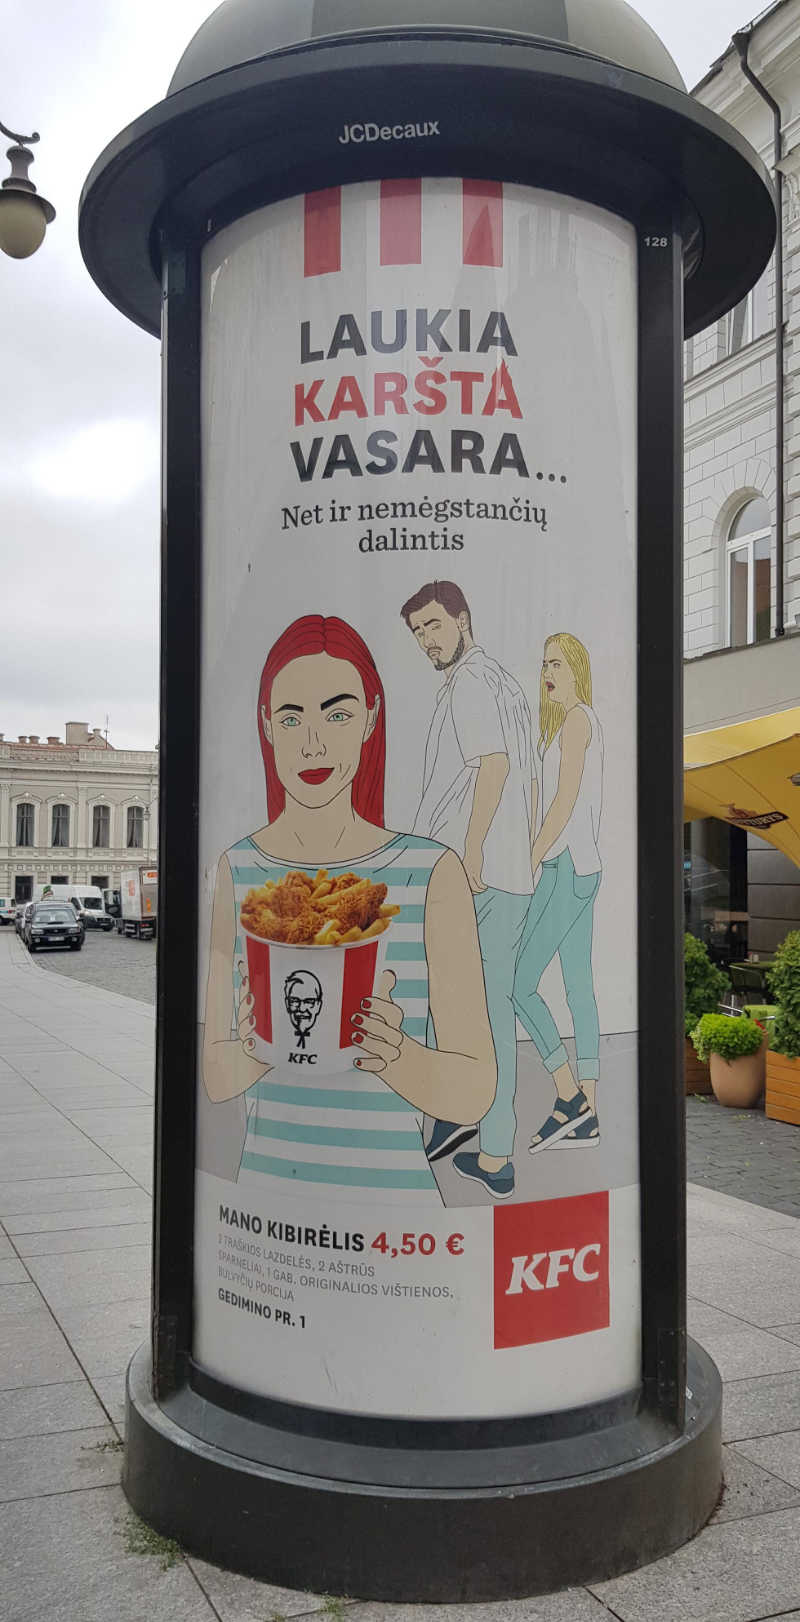 KFC Lithuania has the best marketing strategies